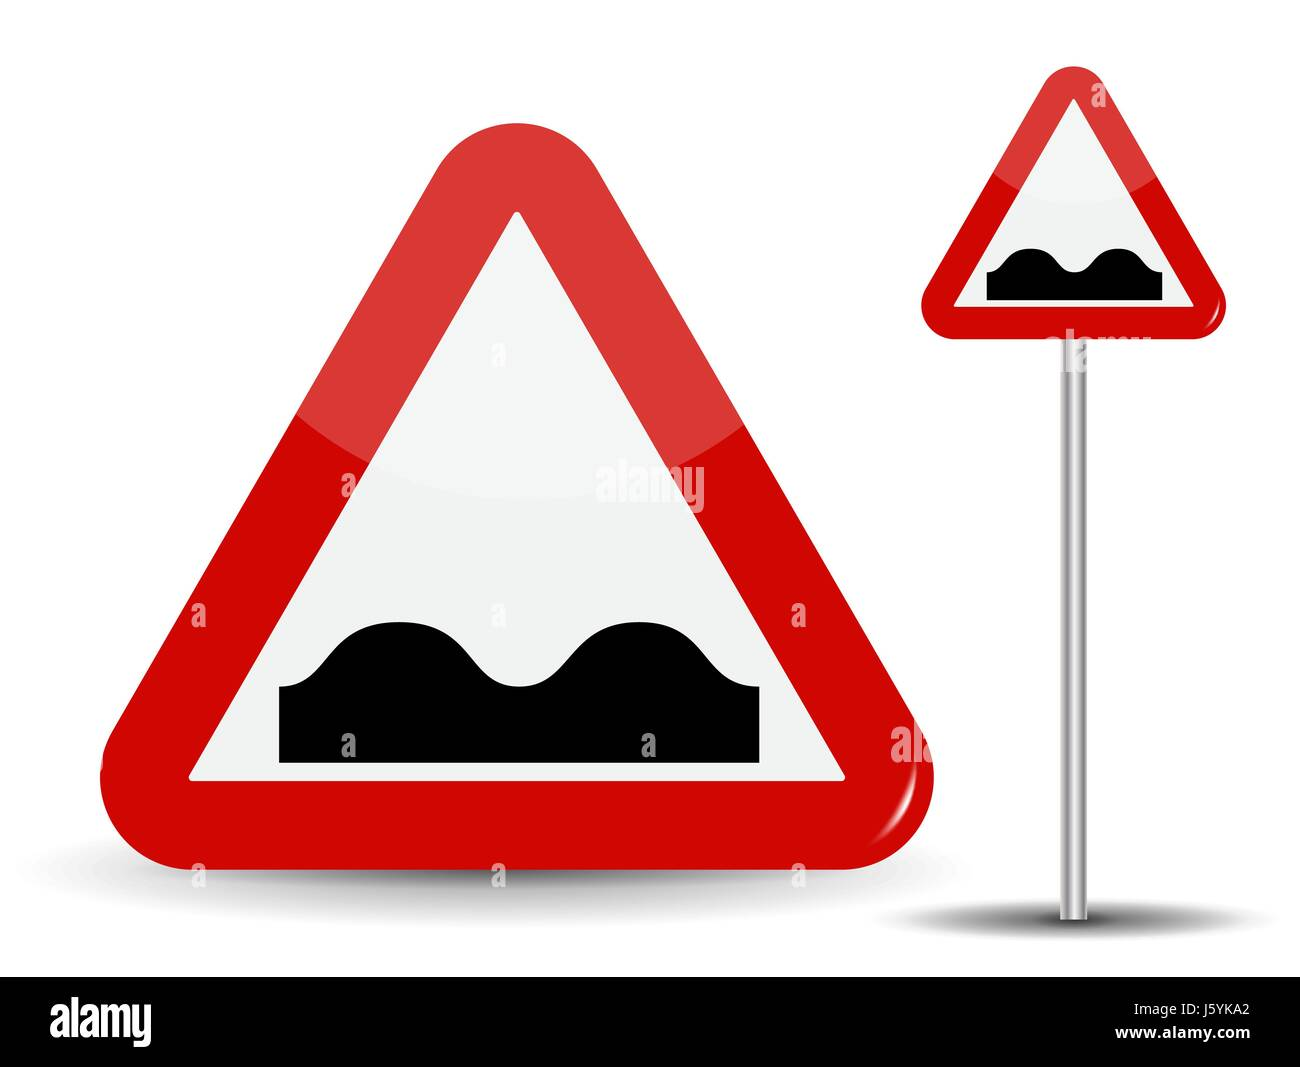 Road sign Warning Uneven road. In Red Triangle image of bad cover with pits. Vector Illustration. - Stock Vector